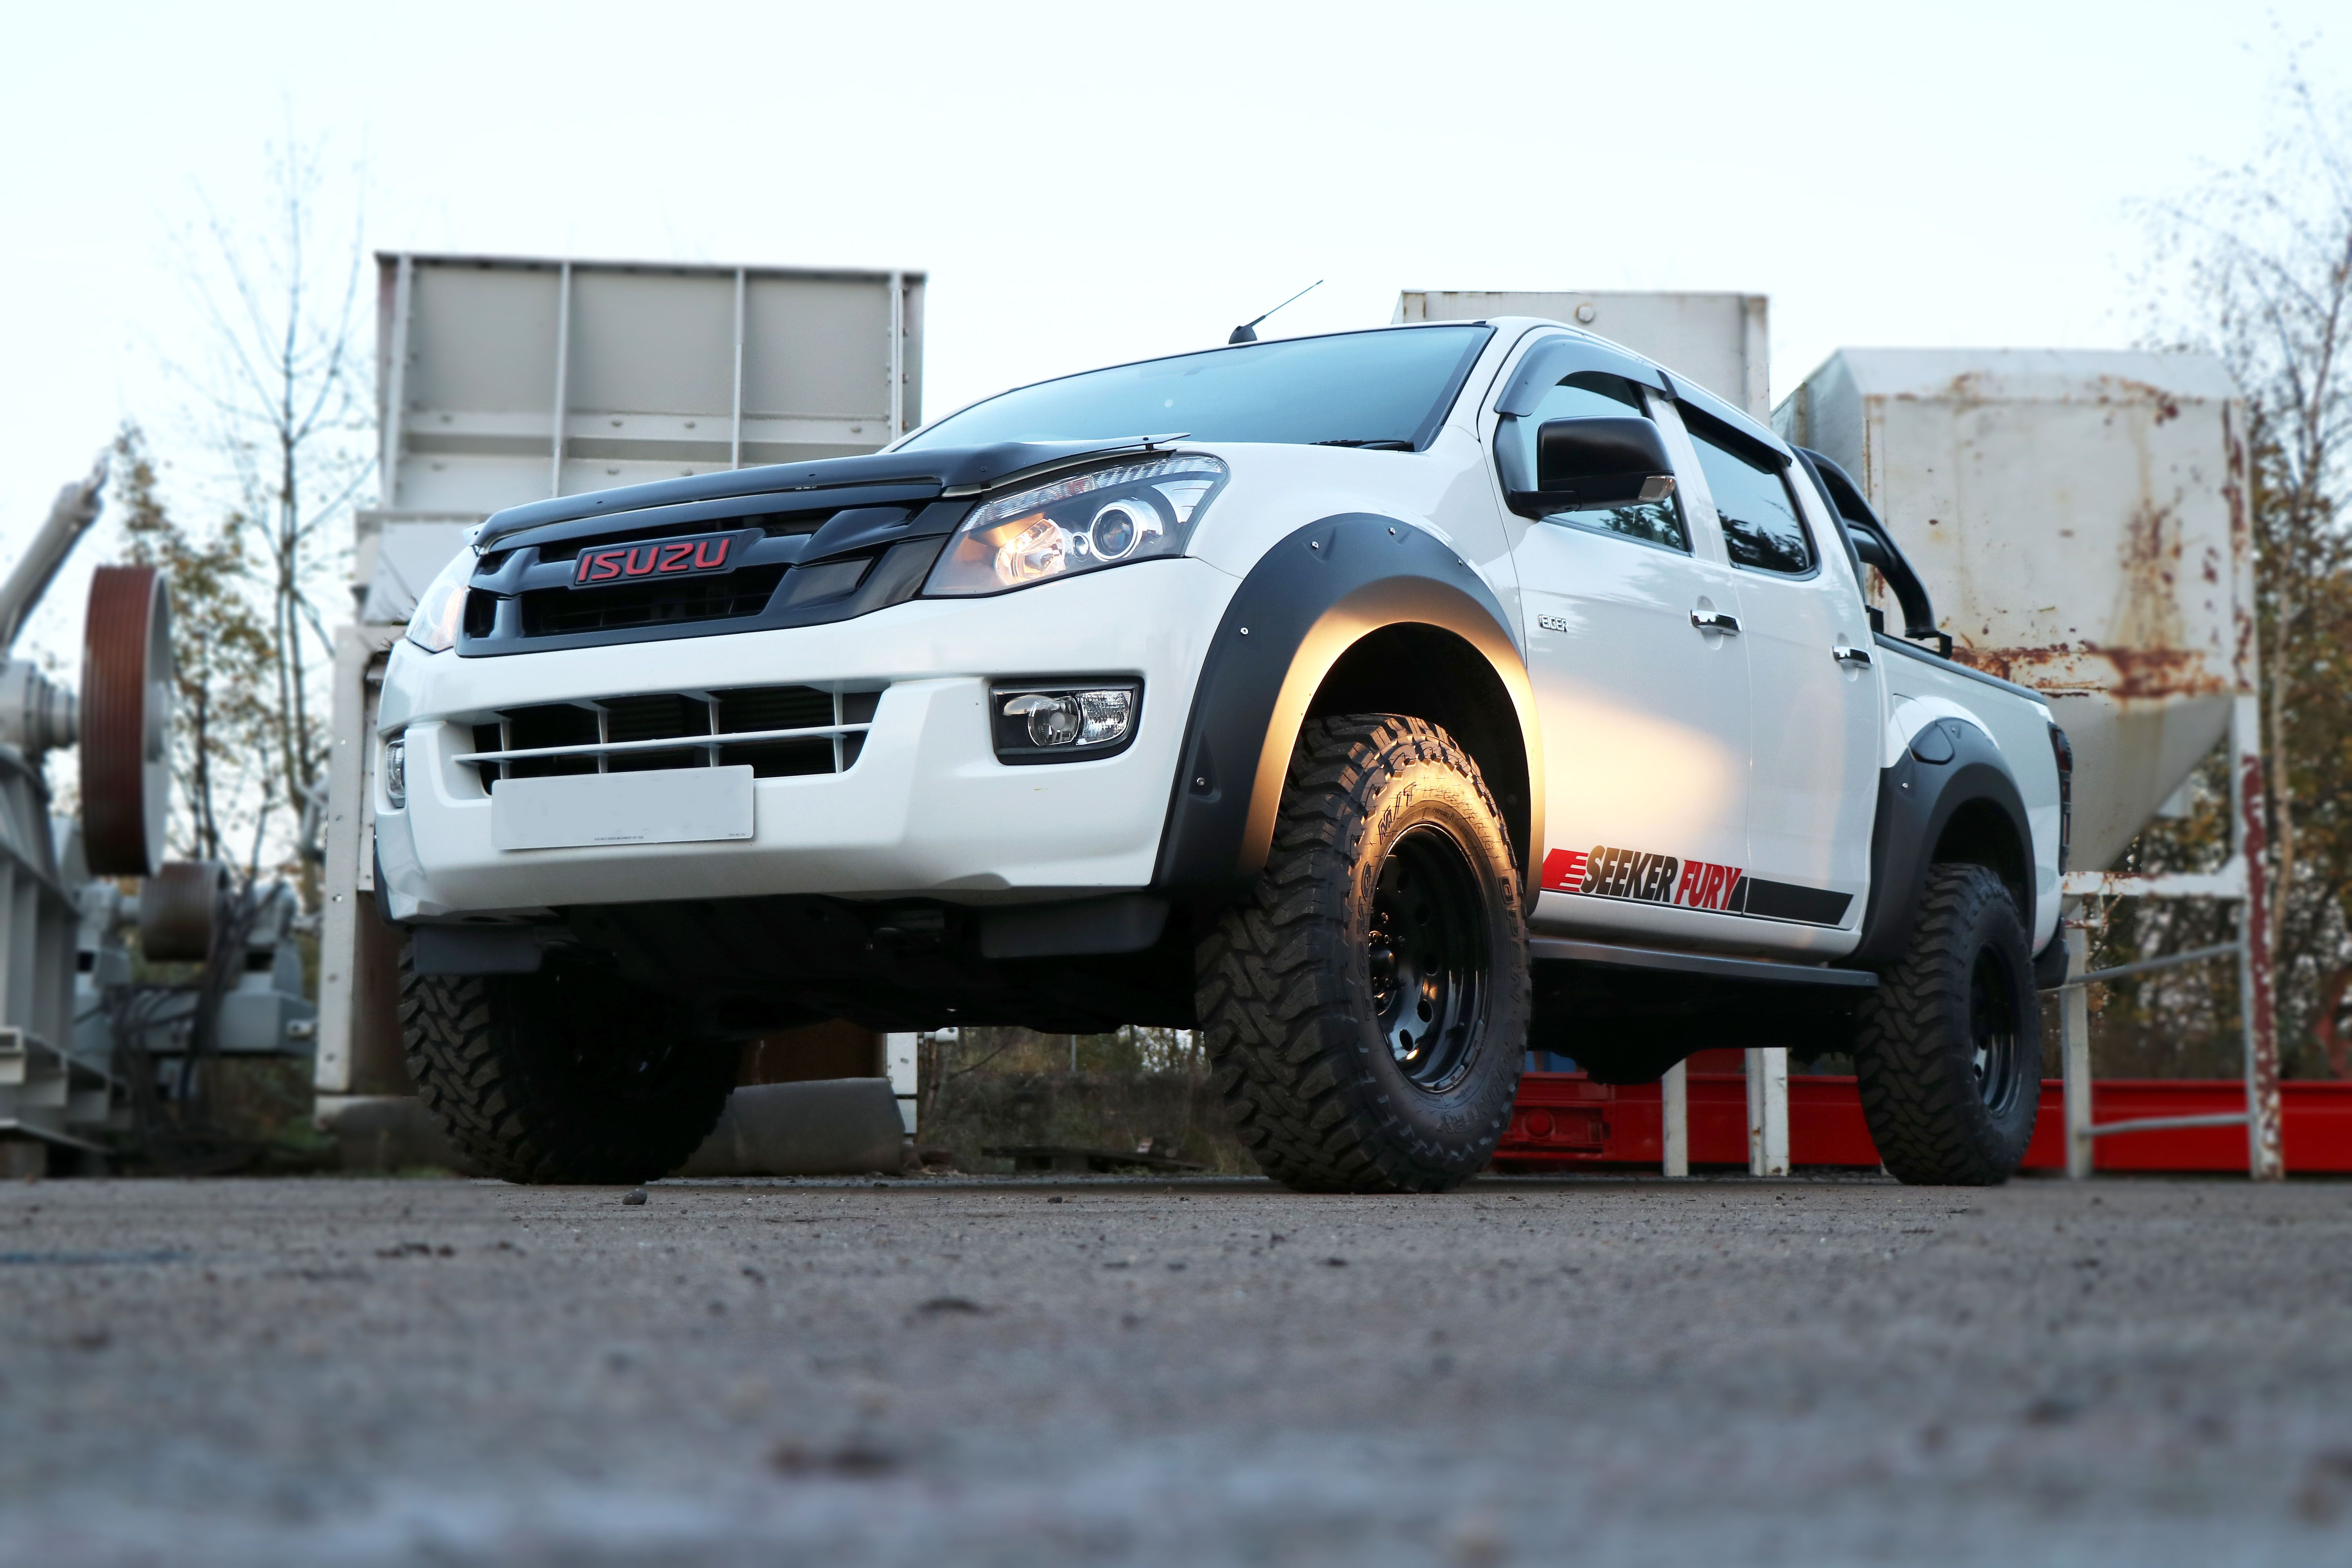 Launching our SEEKER Fury Edition - a conversion for the Isuzu D-Max!